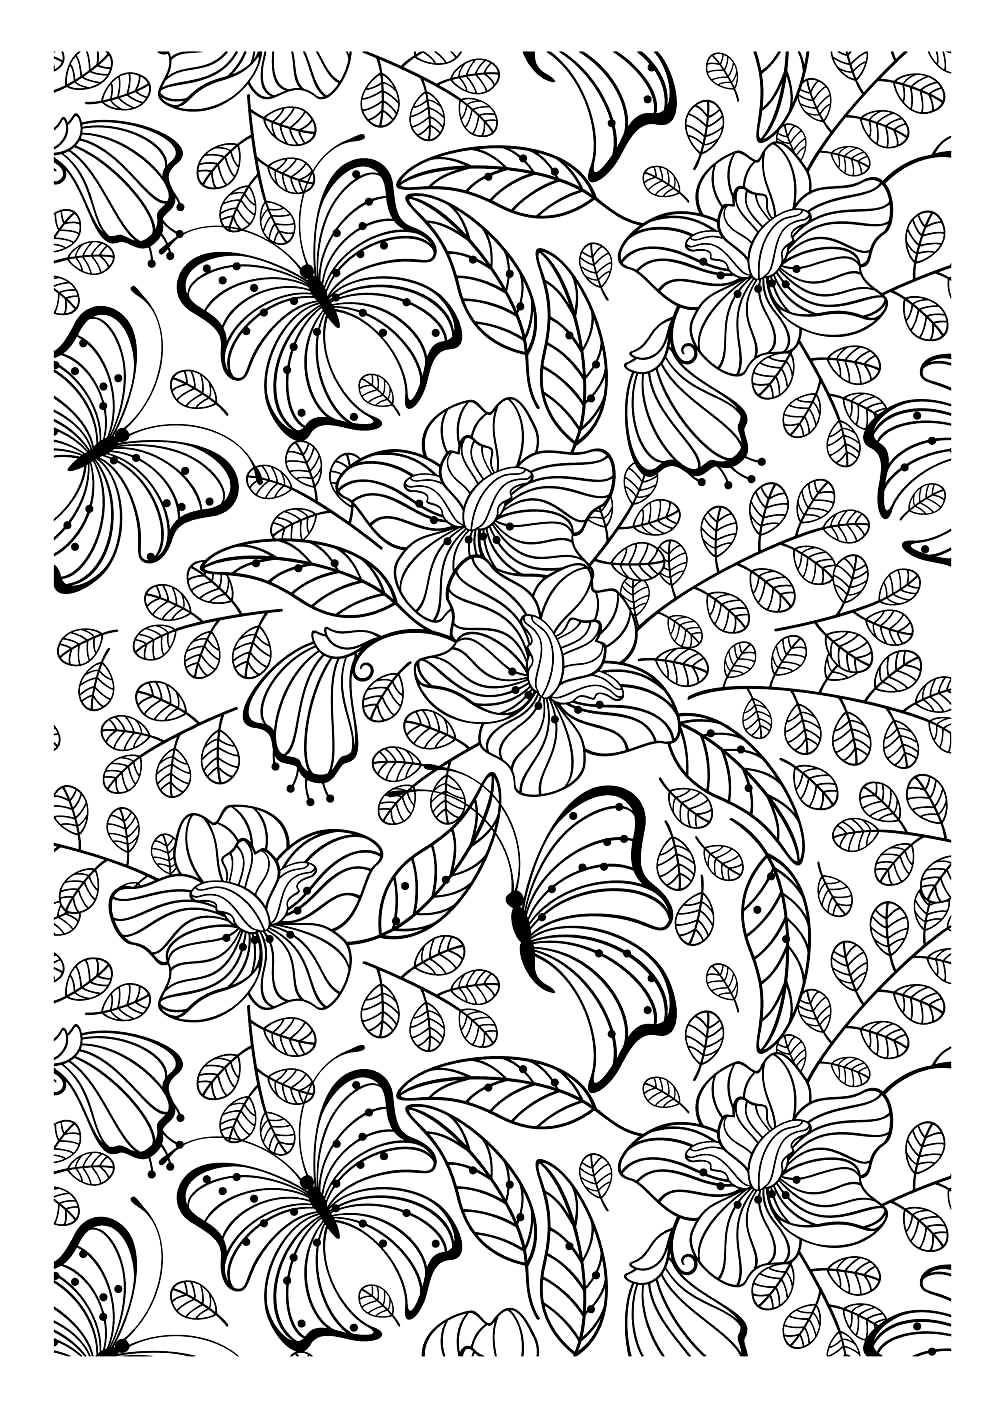 Butterflies - Insects Coloring pages - 100% Mandalas Zen & Anti-stress